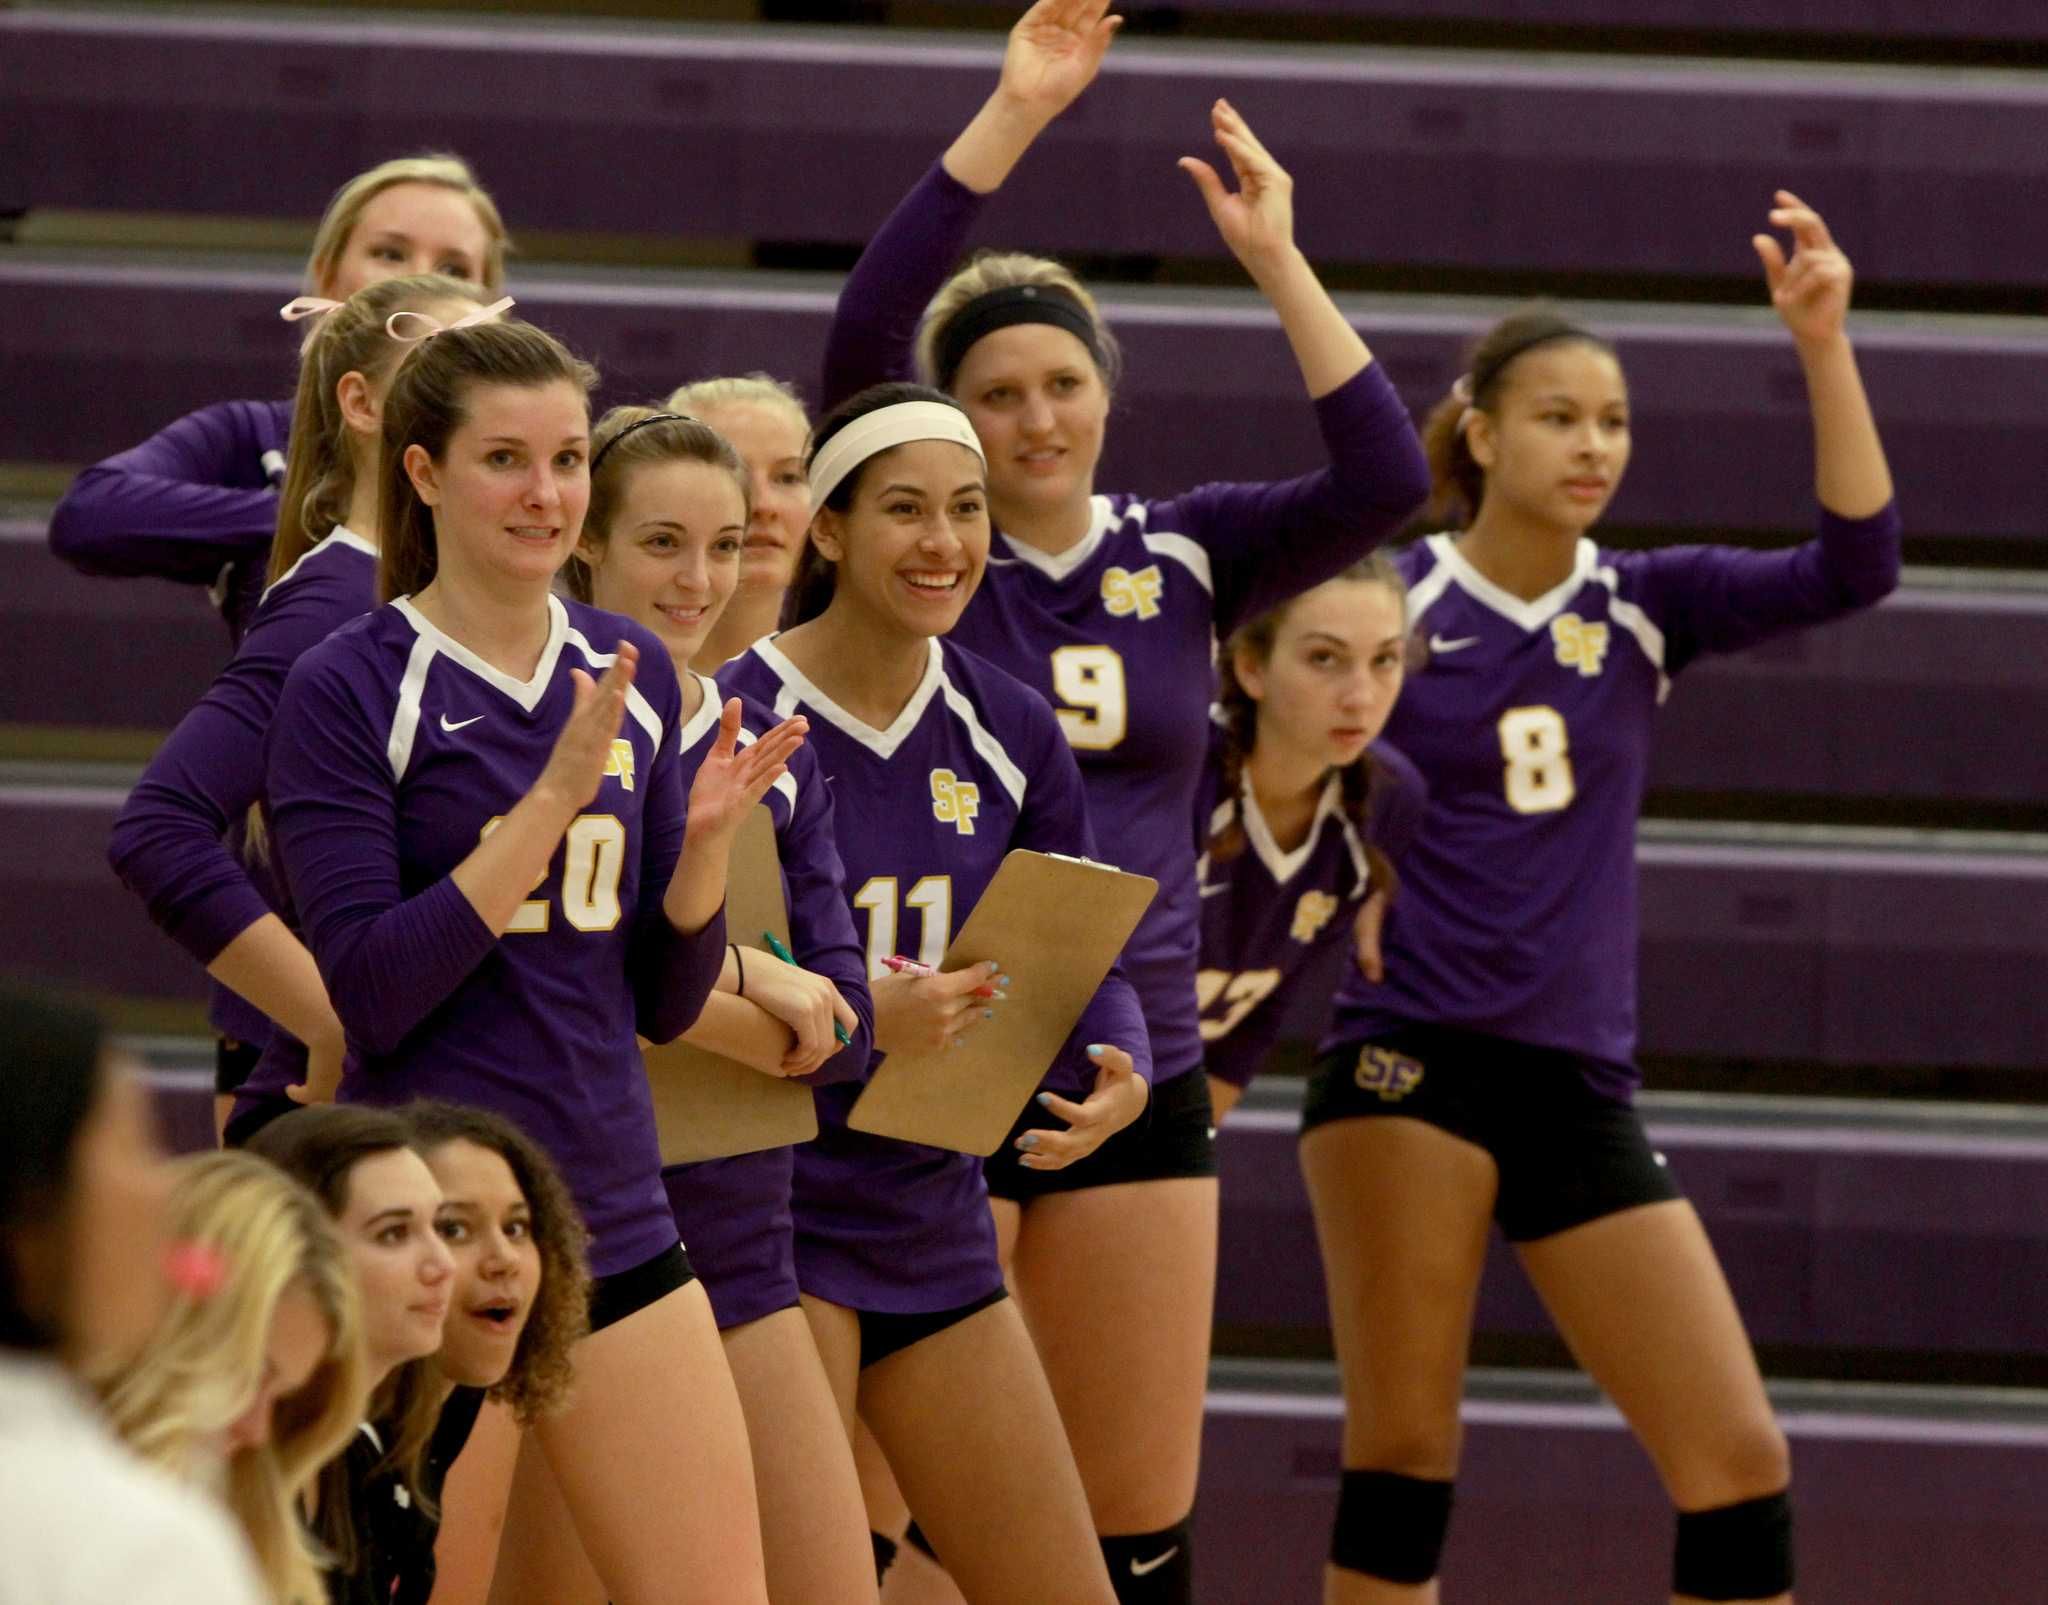 SF State Women's Volleyball team cheers on their teammates from the side lines after winning against California State Dominguez Hills Saturday, Oct. 3, 24- 15. (Angelica Williams / Xpress)